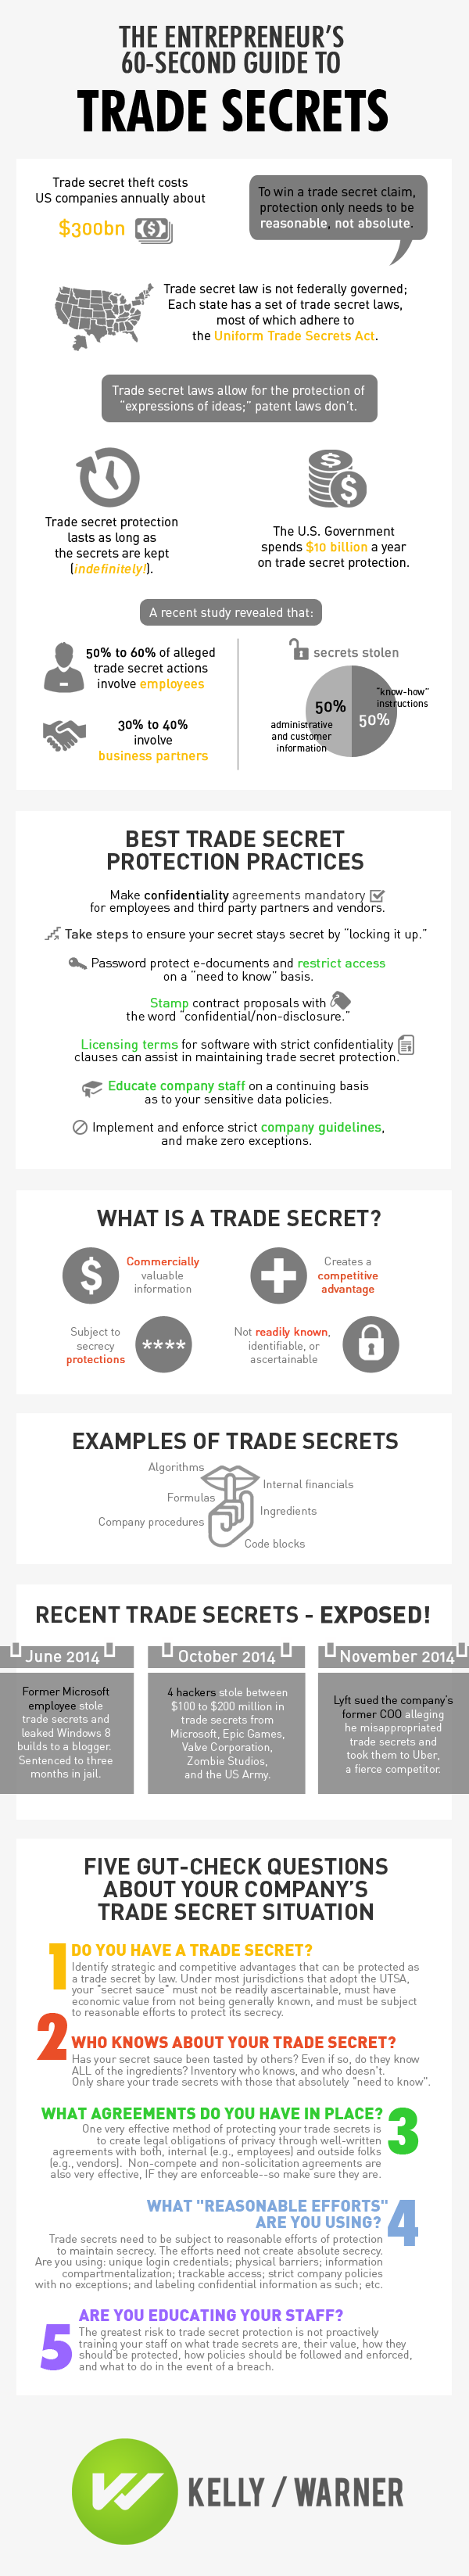 Trade secret infographic by Kelly / Warner Law